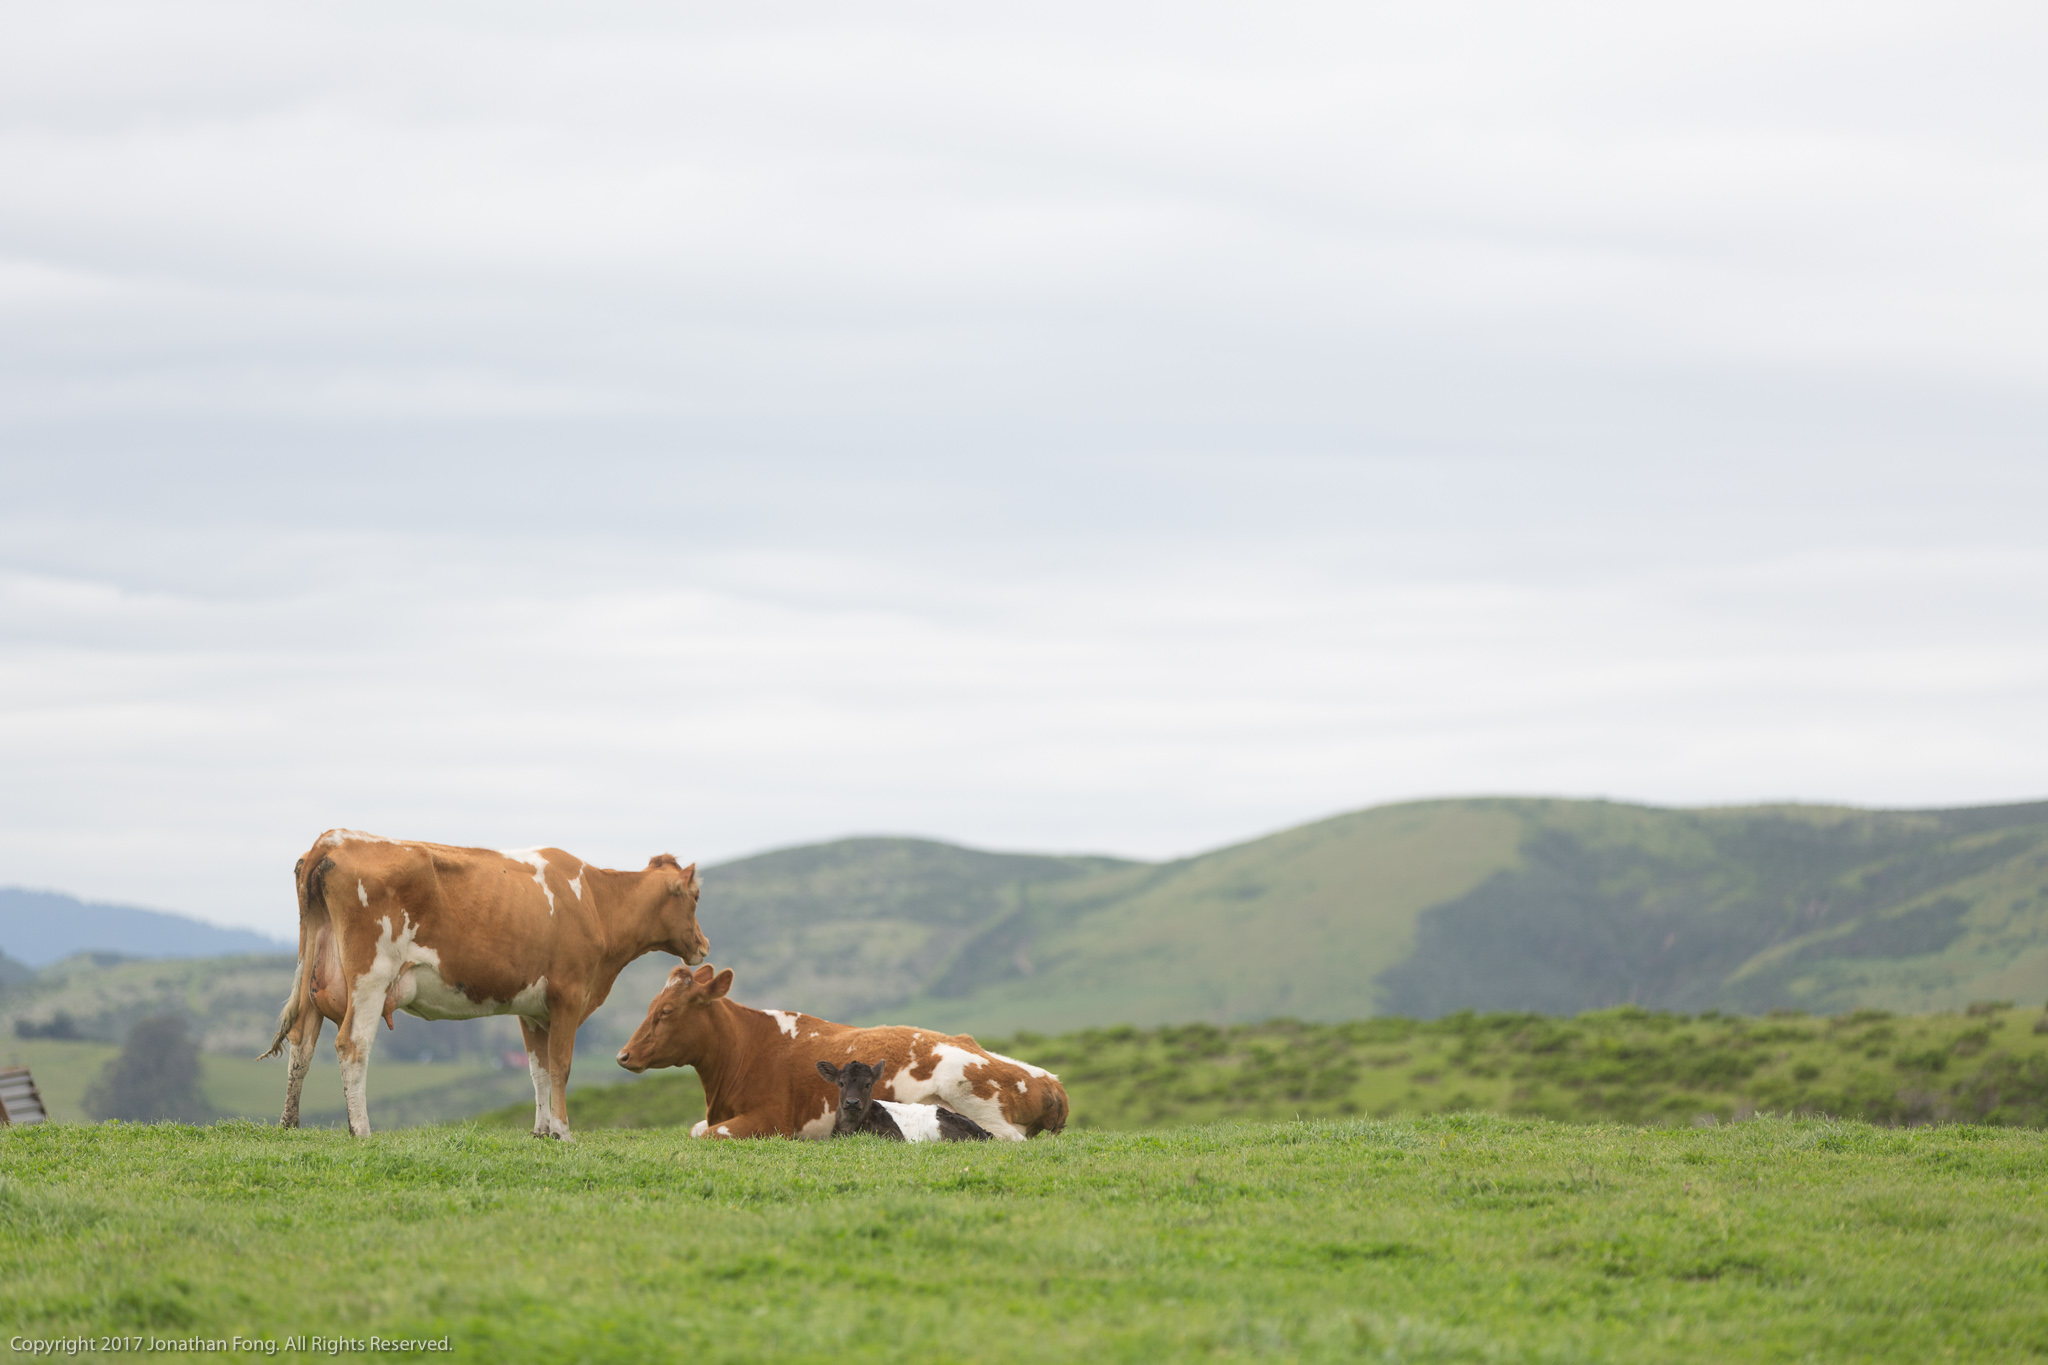 The Markegard's decisions to incorporate regenerative practices into their business and to introduce their children to stems from their shared respect for the animals both under their stewardship and those within the greater ecosystem.